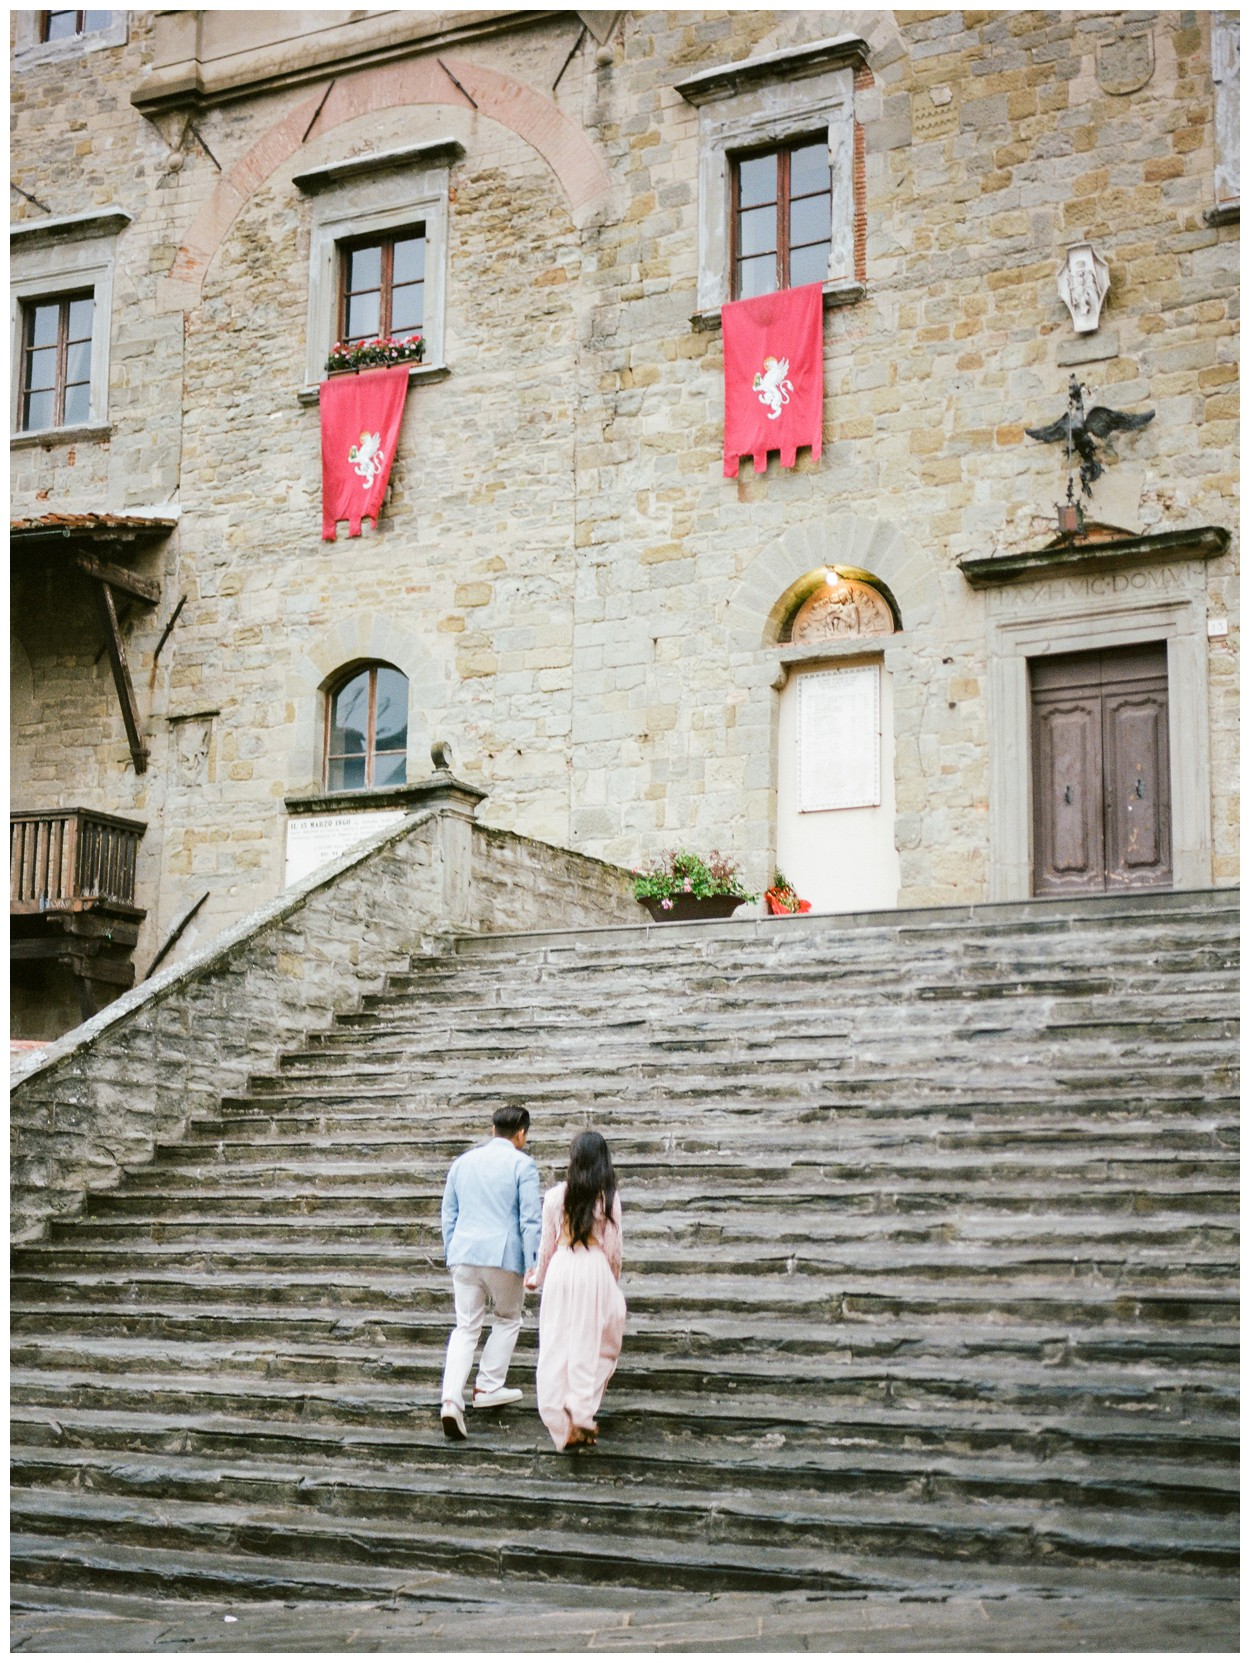 Spring Engagement at Villa Montanare in Cortona Tuscany, Italy by fine art wedding photographer Lissa Ryan Photography couple at Cortona Town Hall